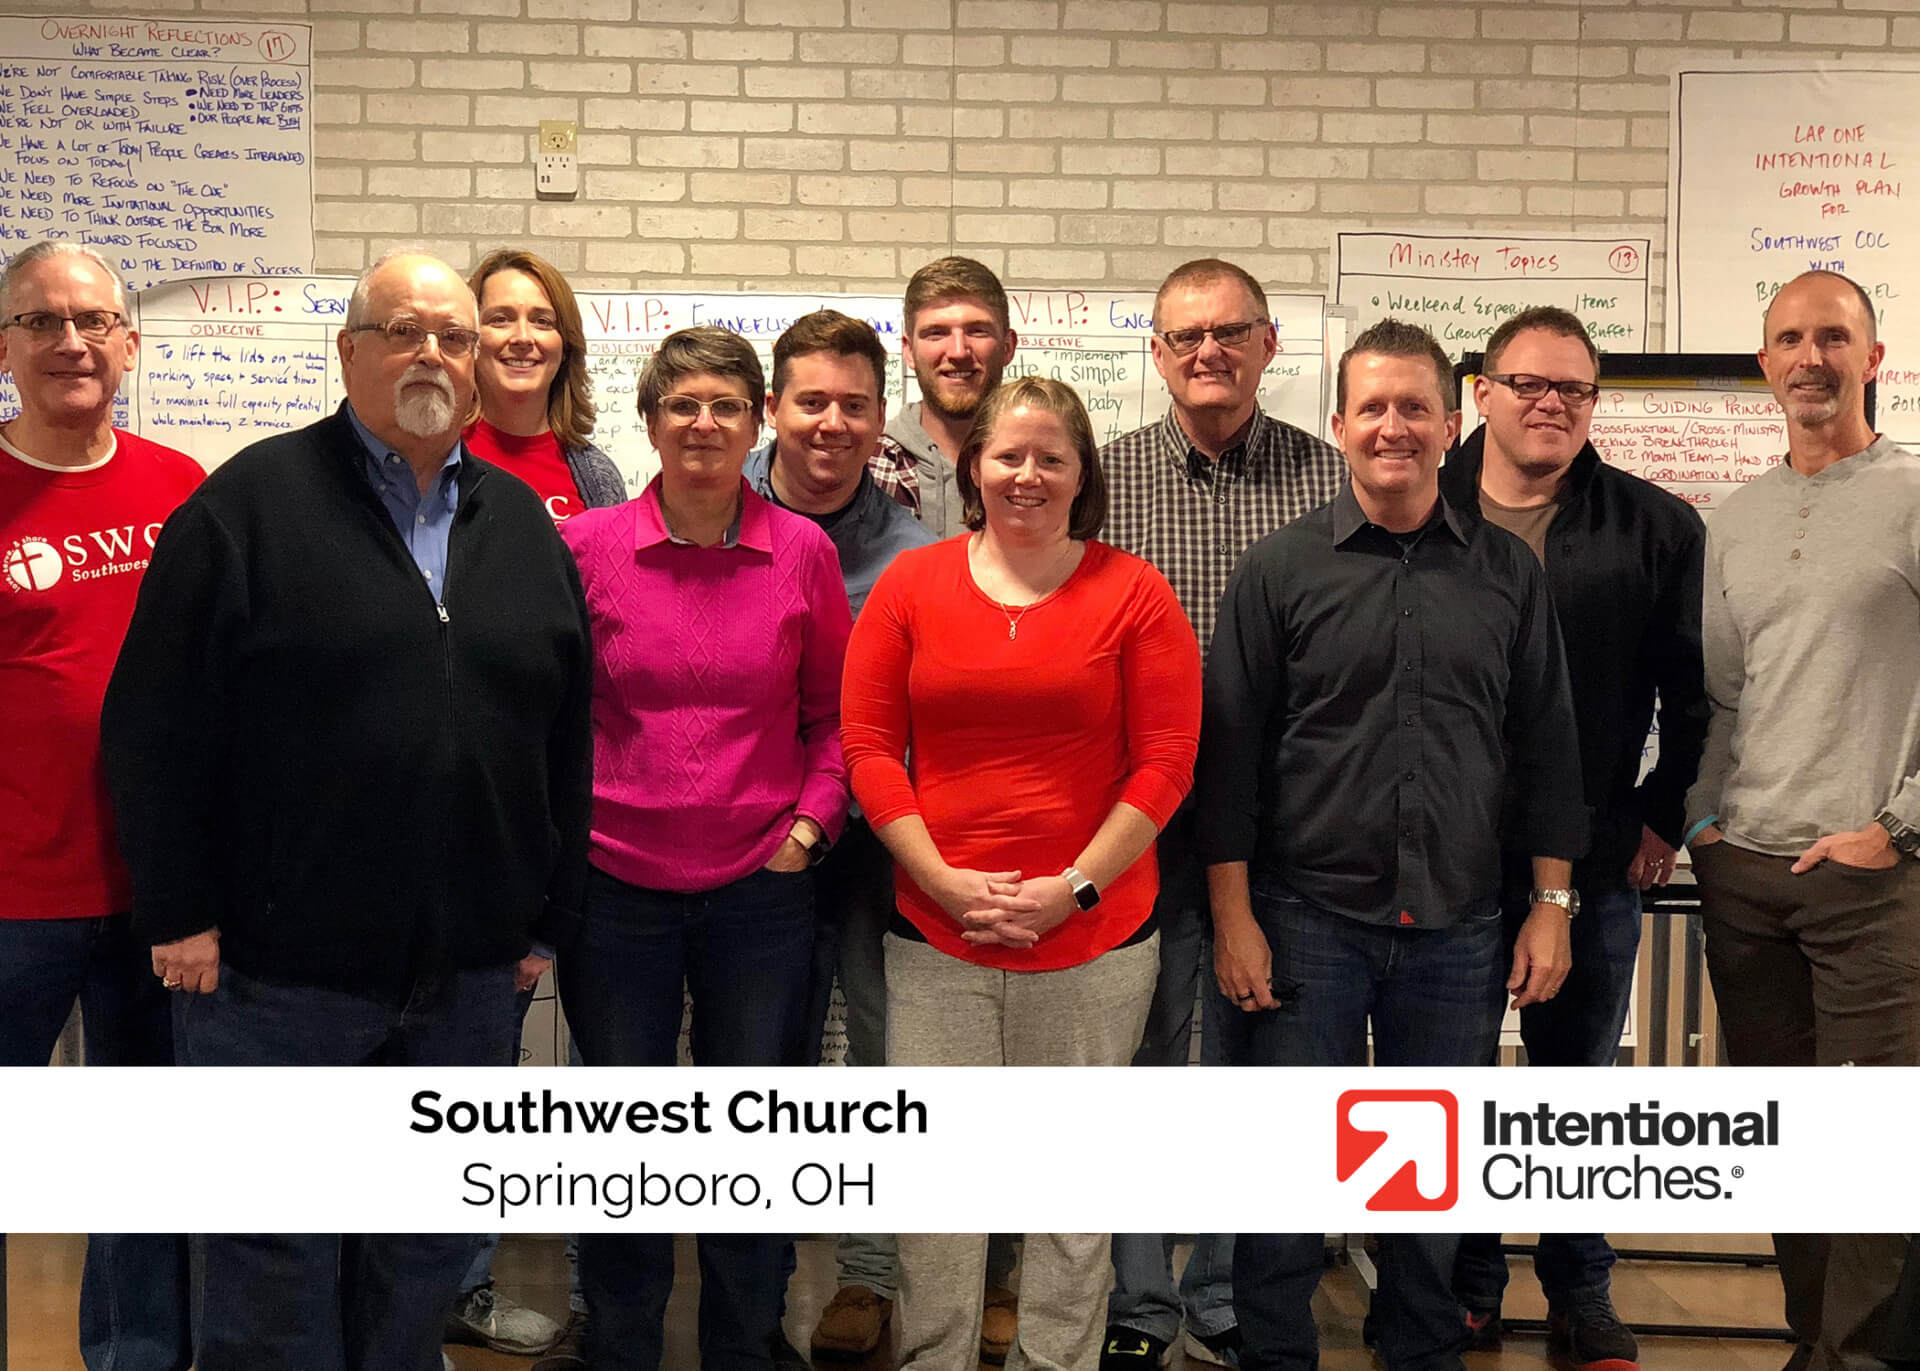 5 Things I Learned from Southwest Church – Springboro, OH